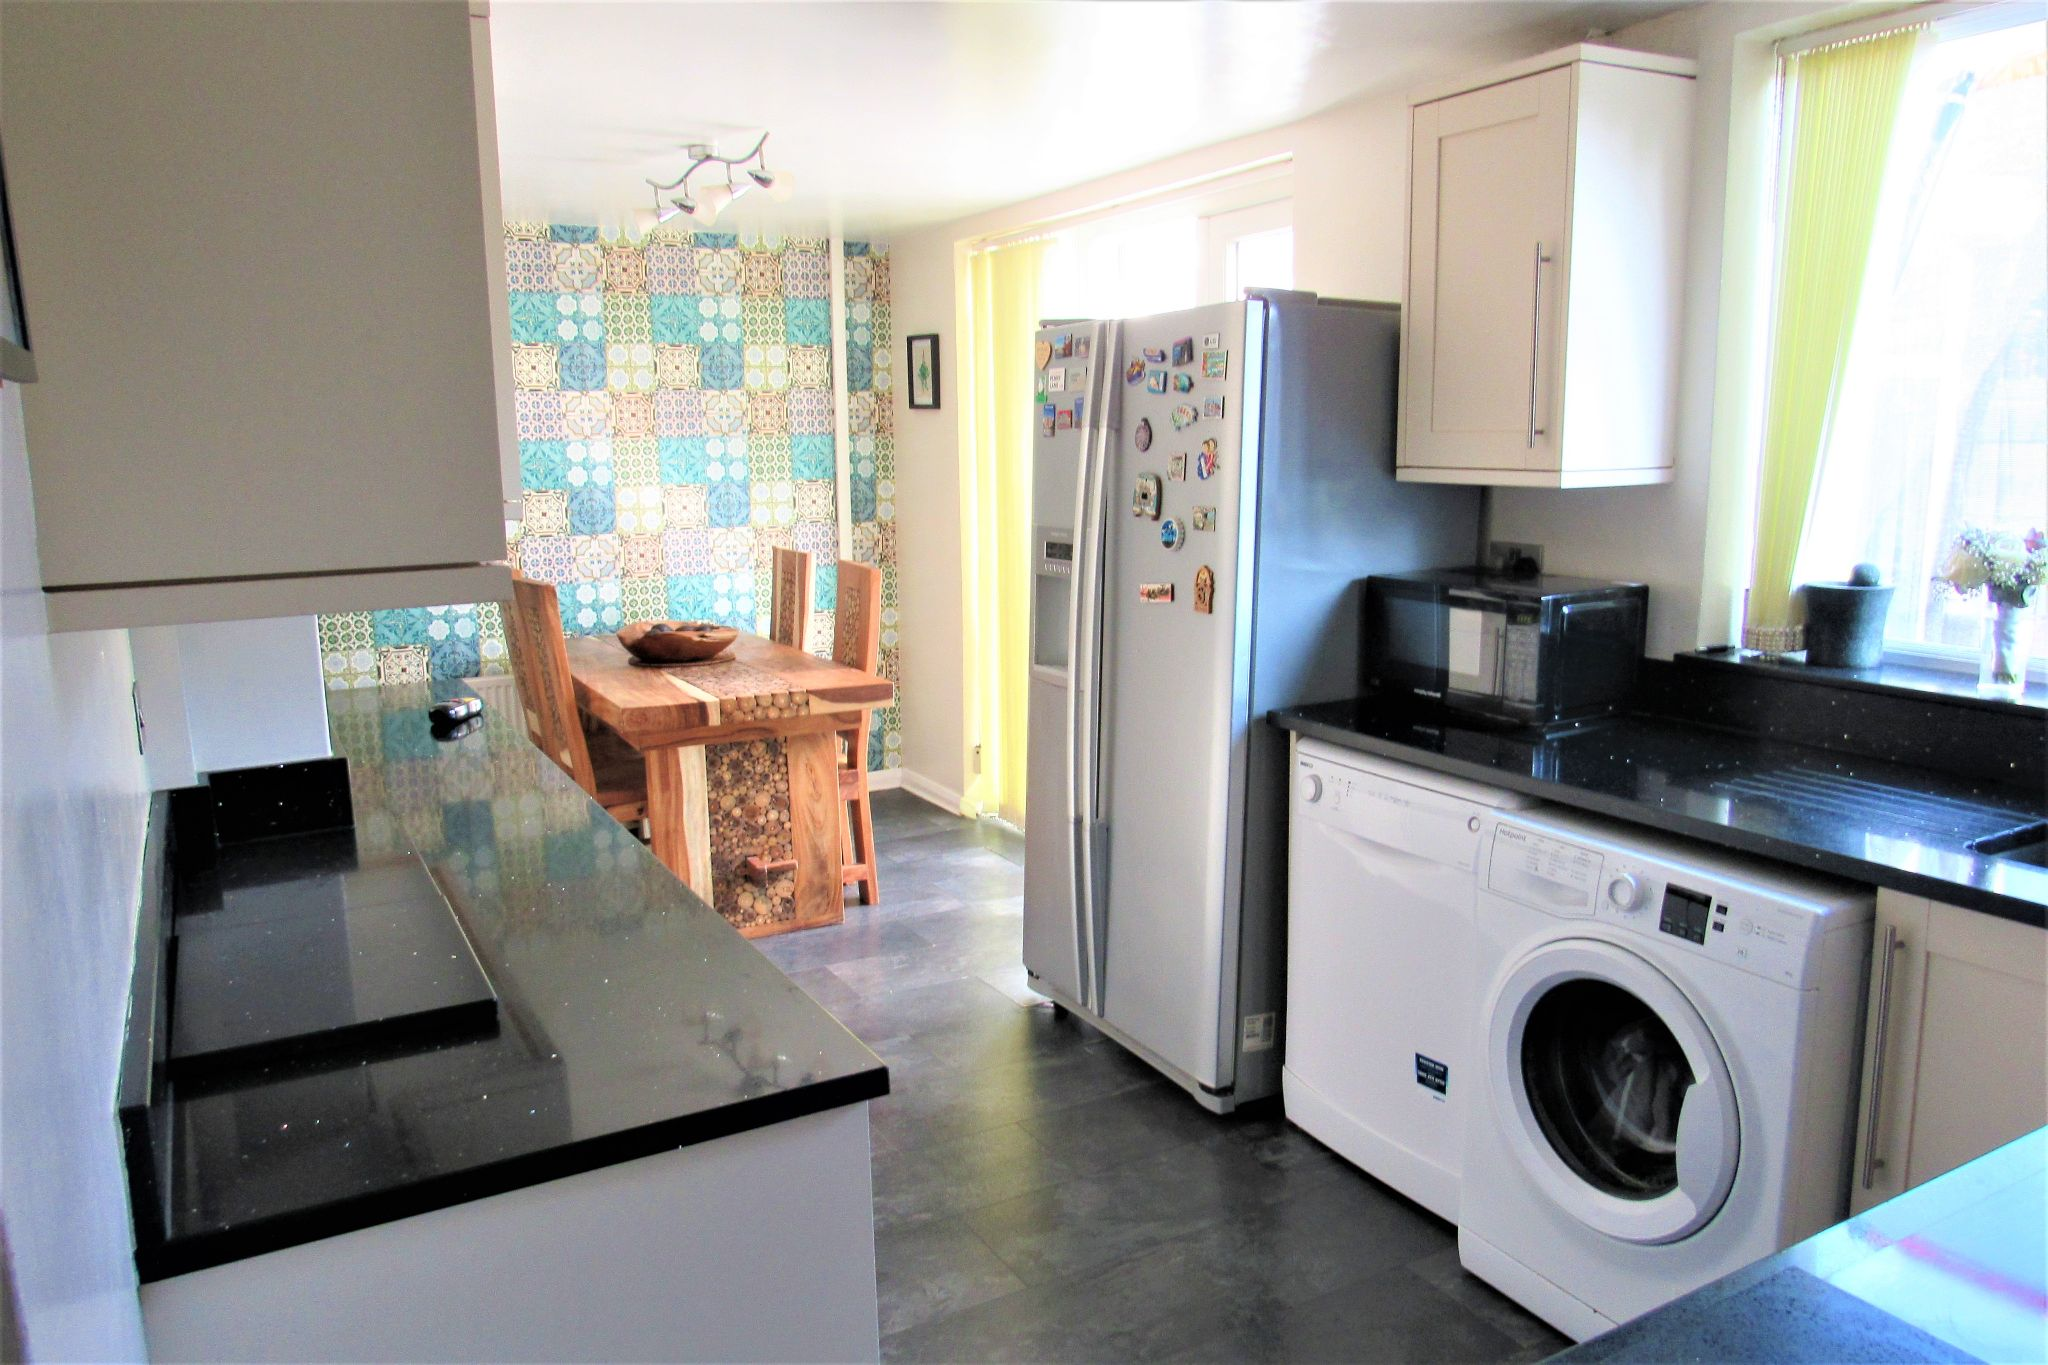 3 bedroom end terraced house Sale Agreed in Manchester - Photograph 10.